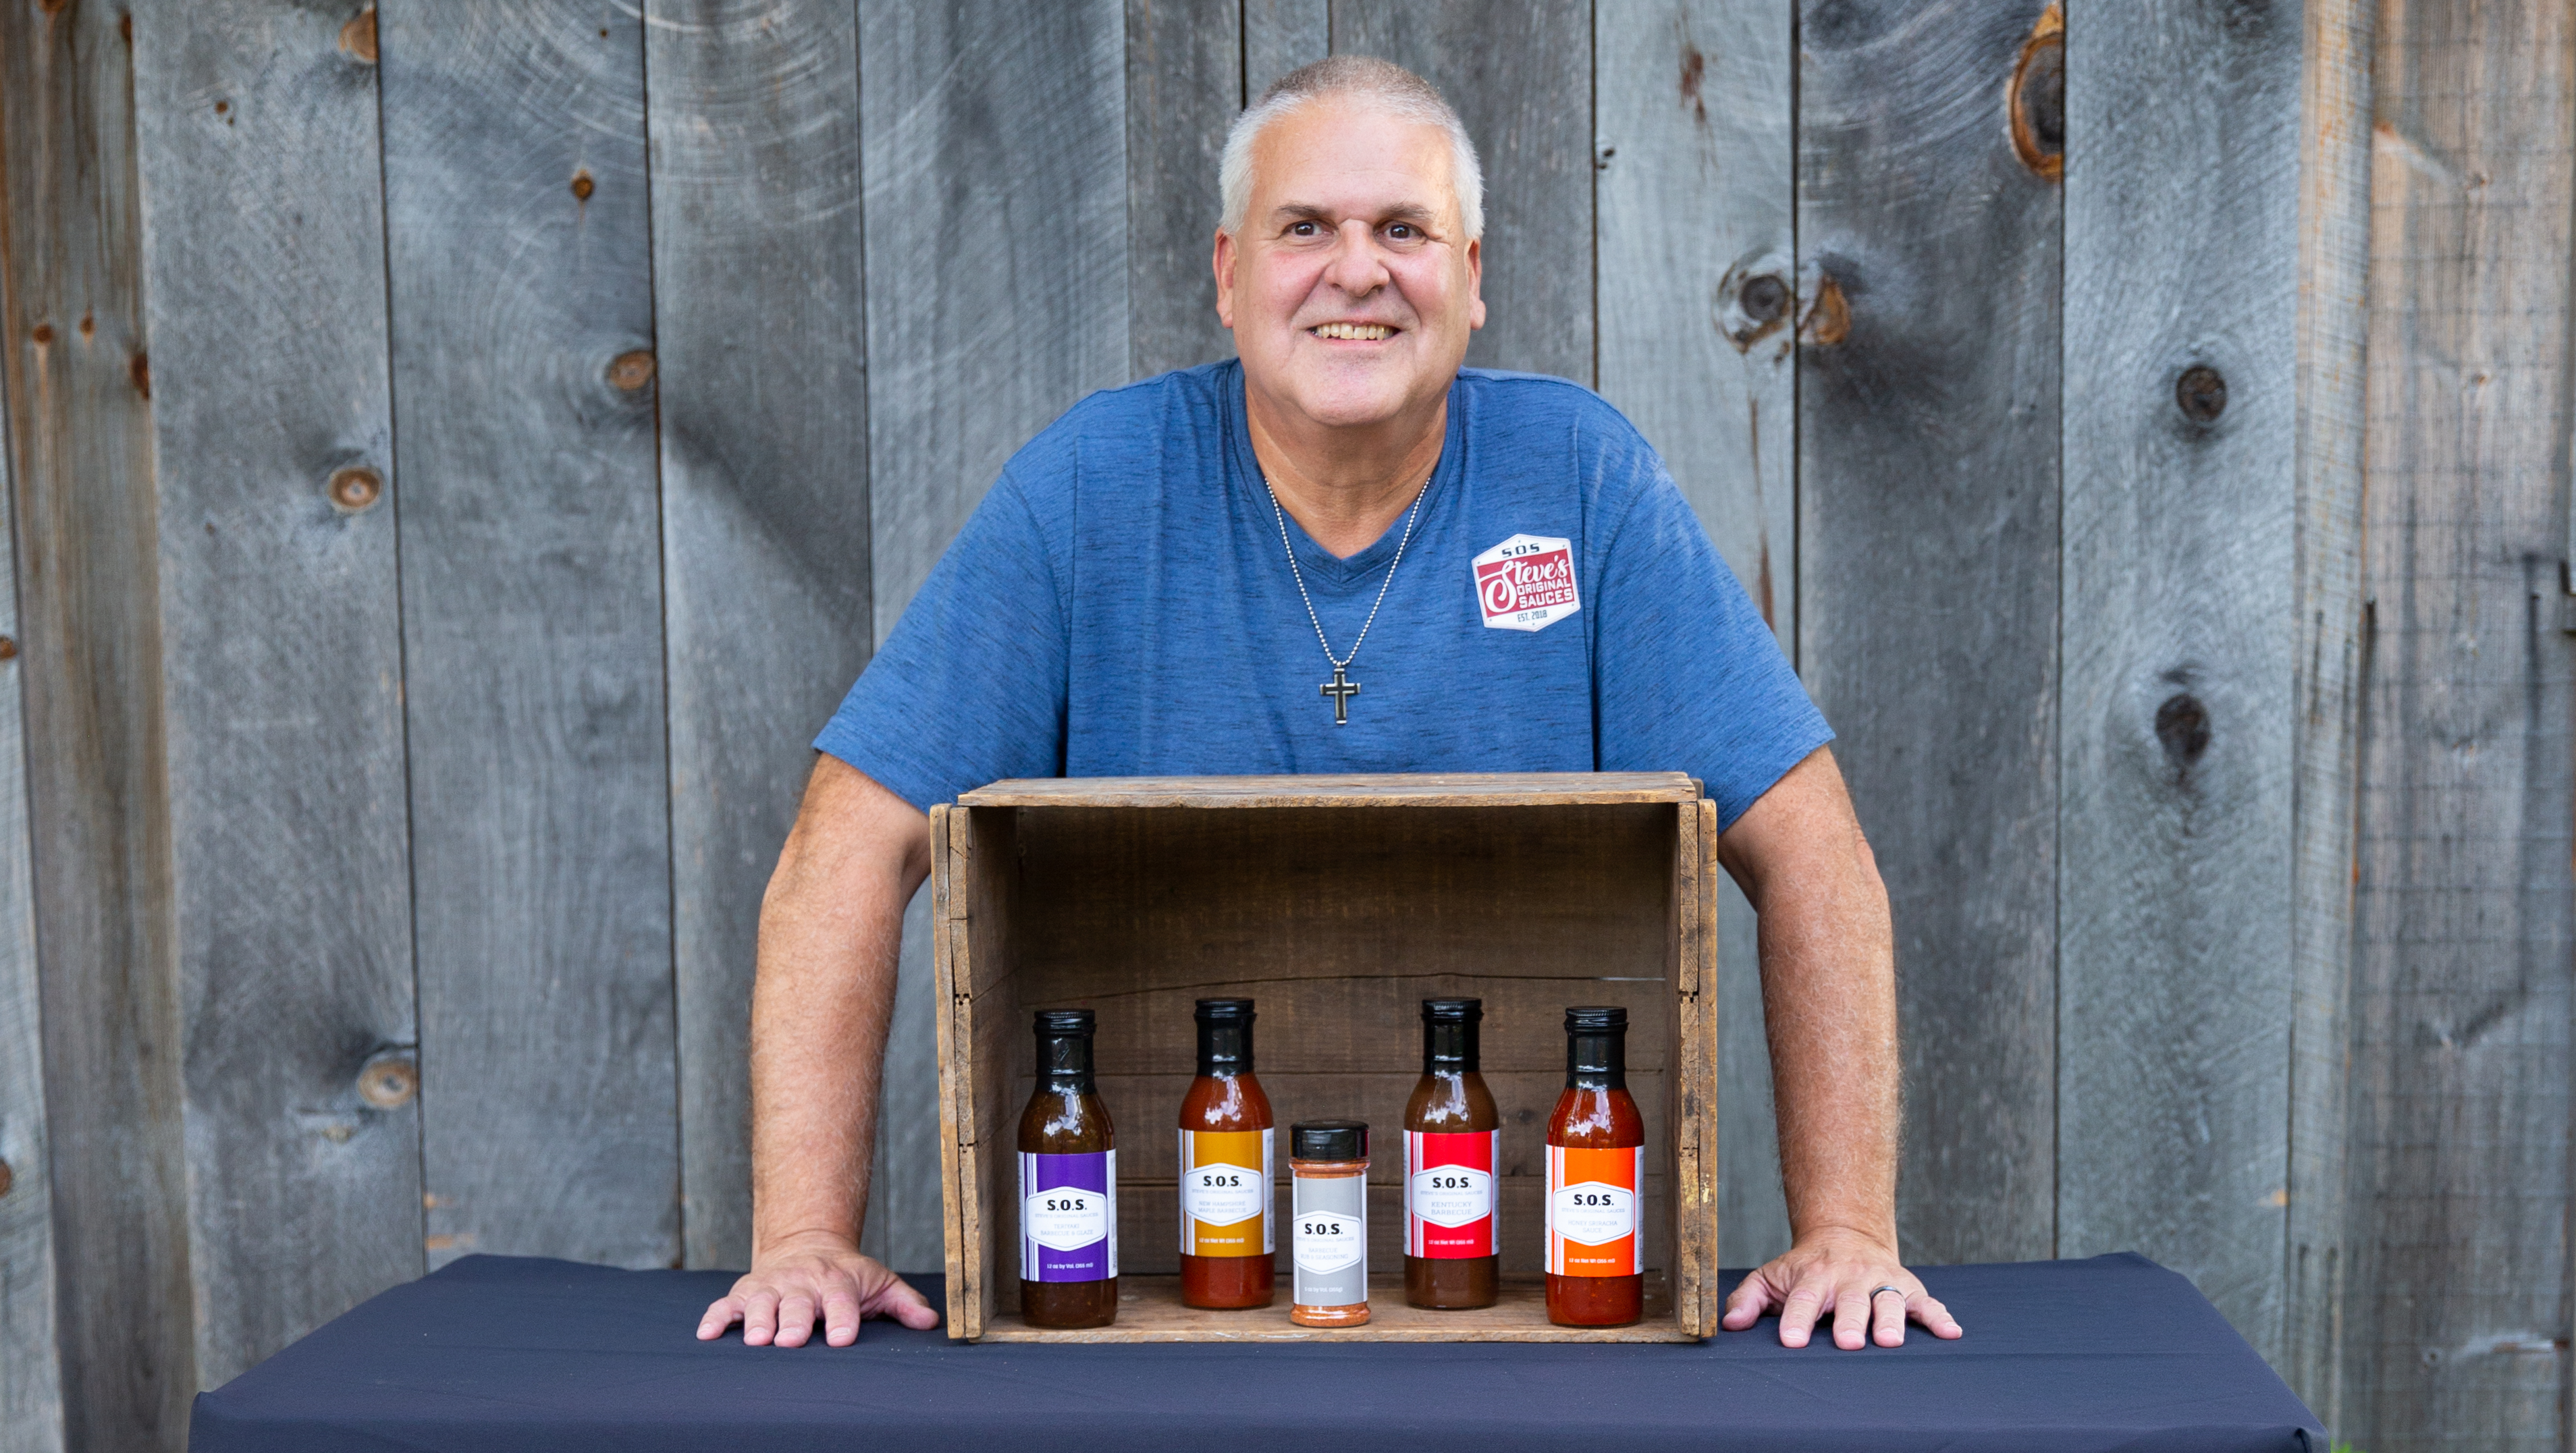 Steve's Original Sauces, Llc